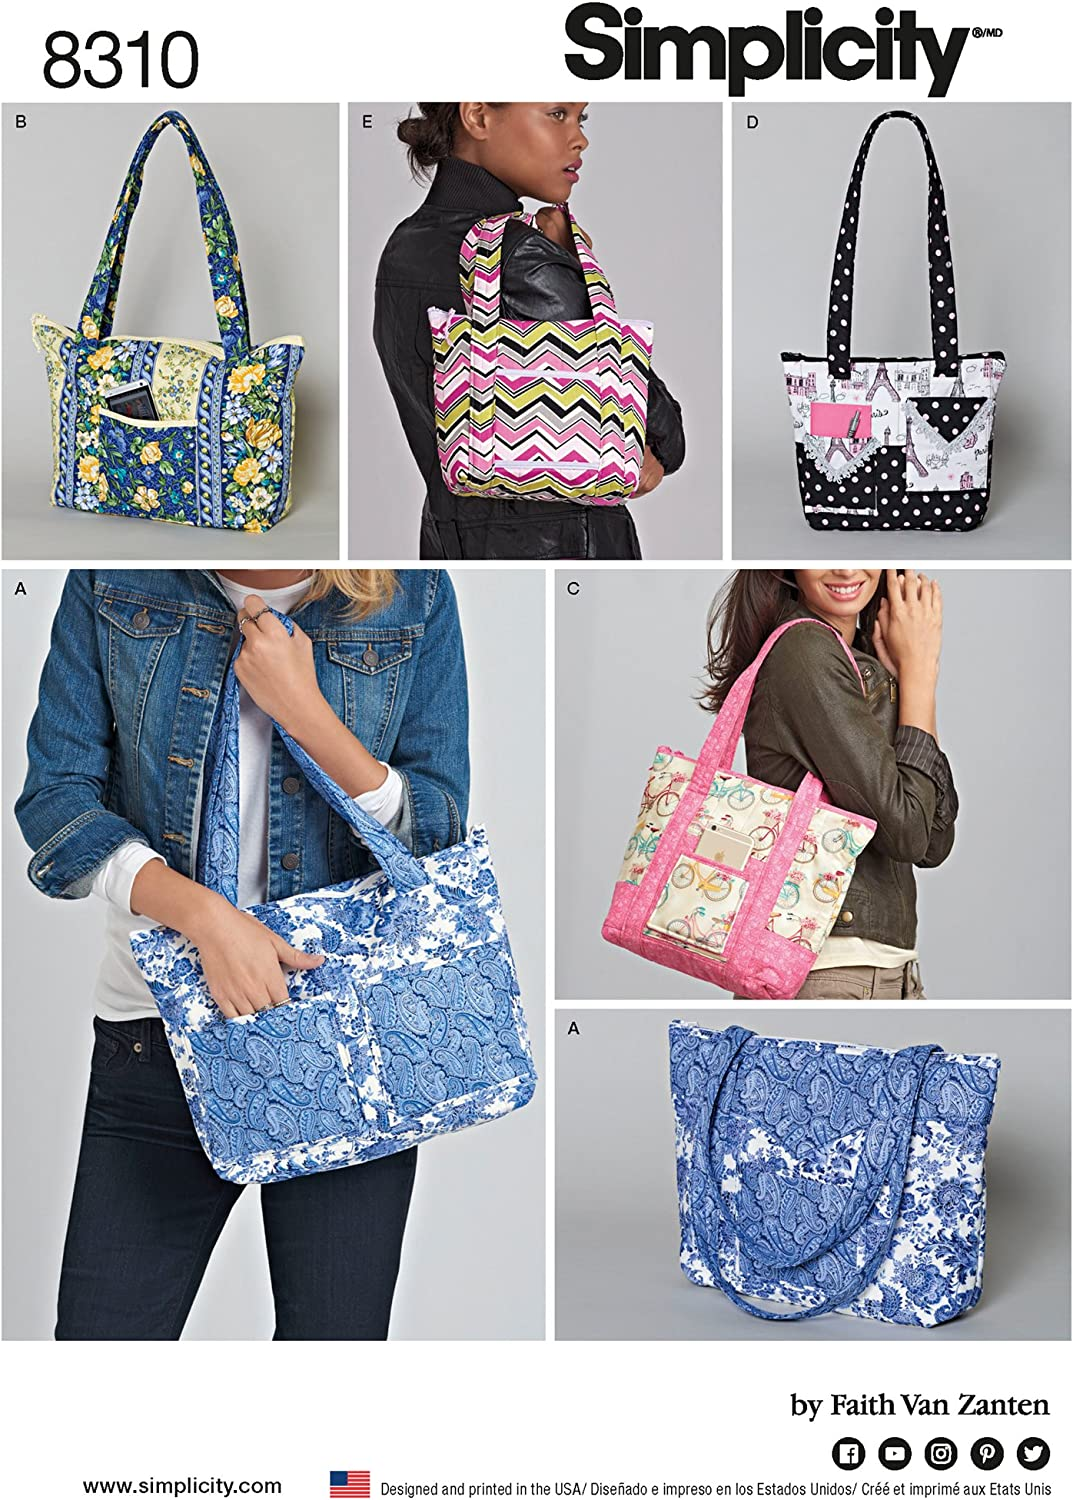 Simplicity Quilted Shoulder Bag Sewing Patterns, One Size Only